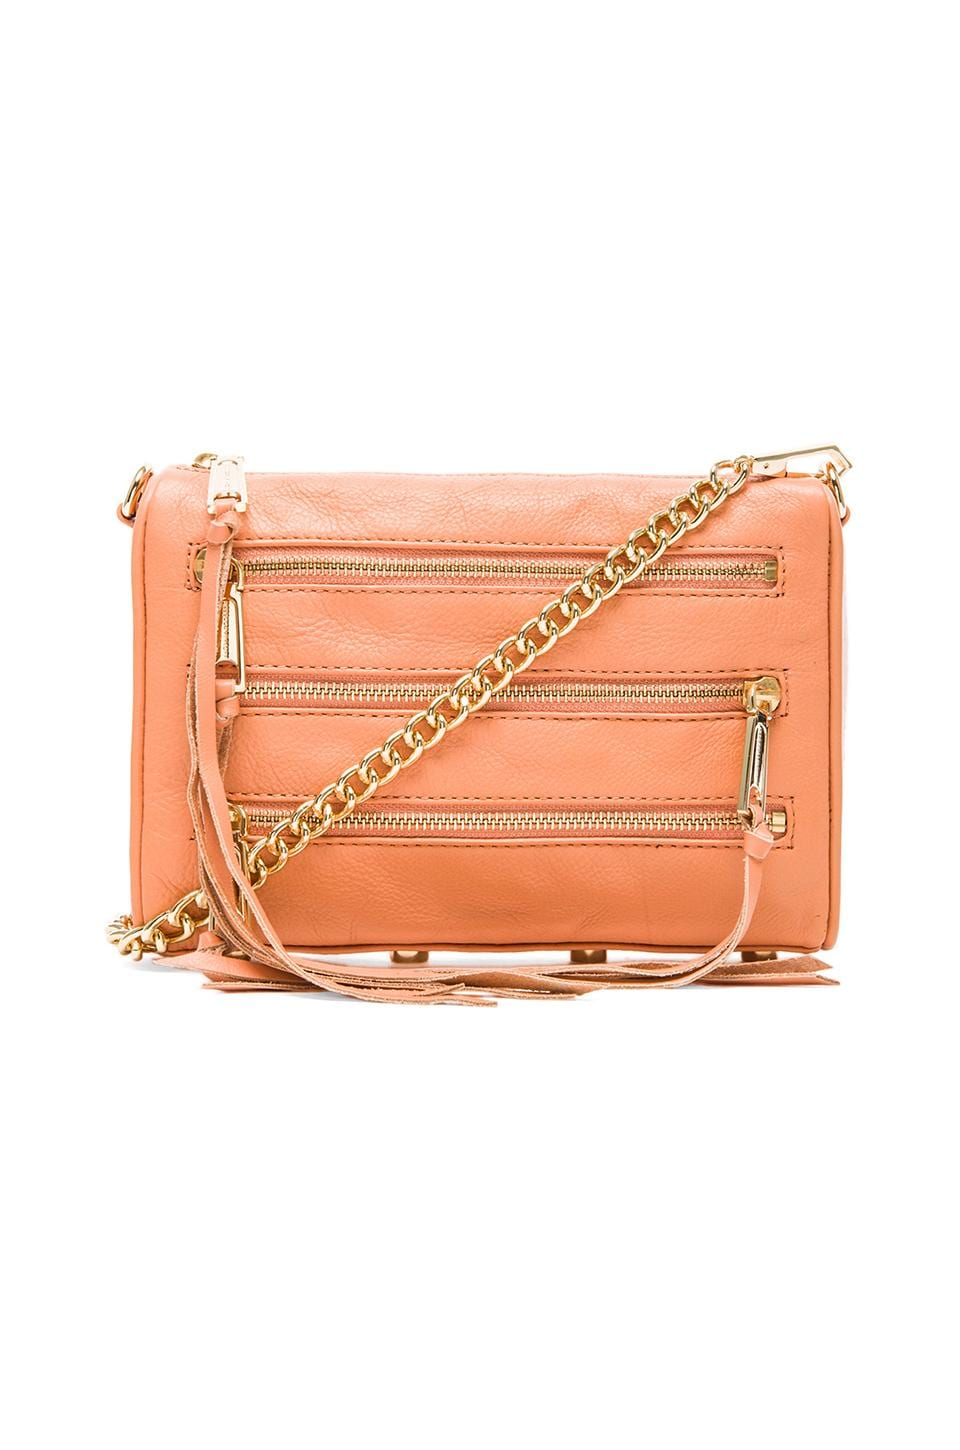 Rebecca Minkoff Mini 5 Zip in Peachy